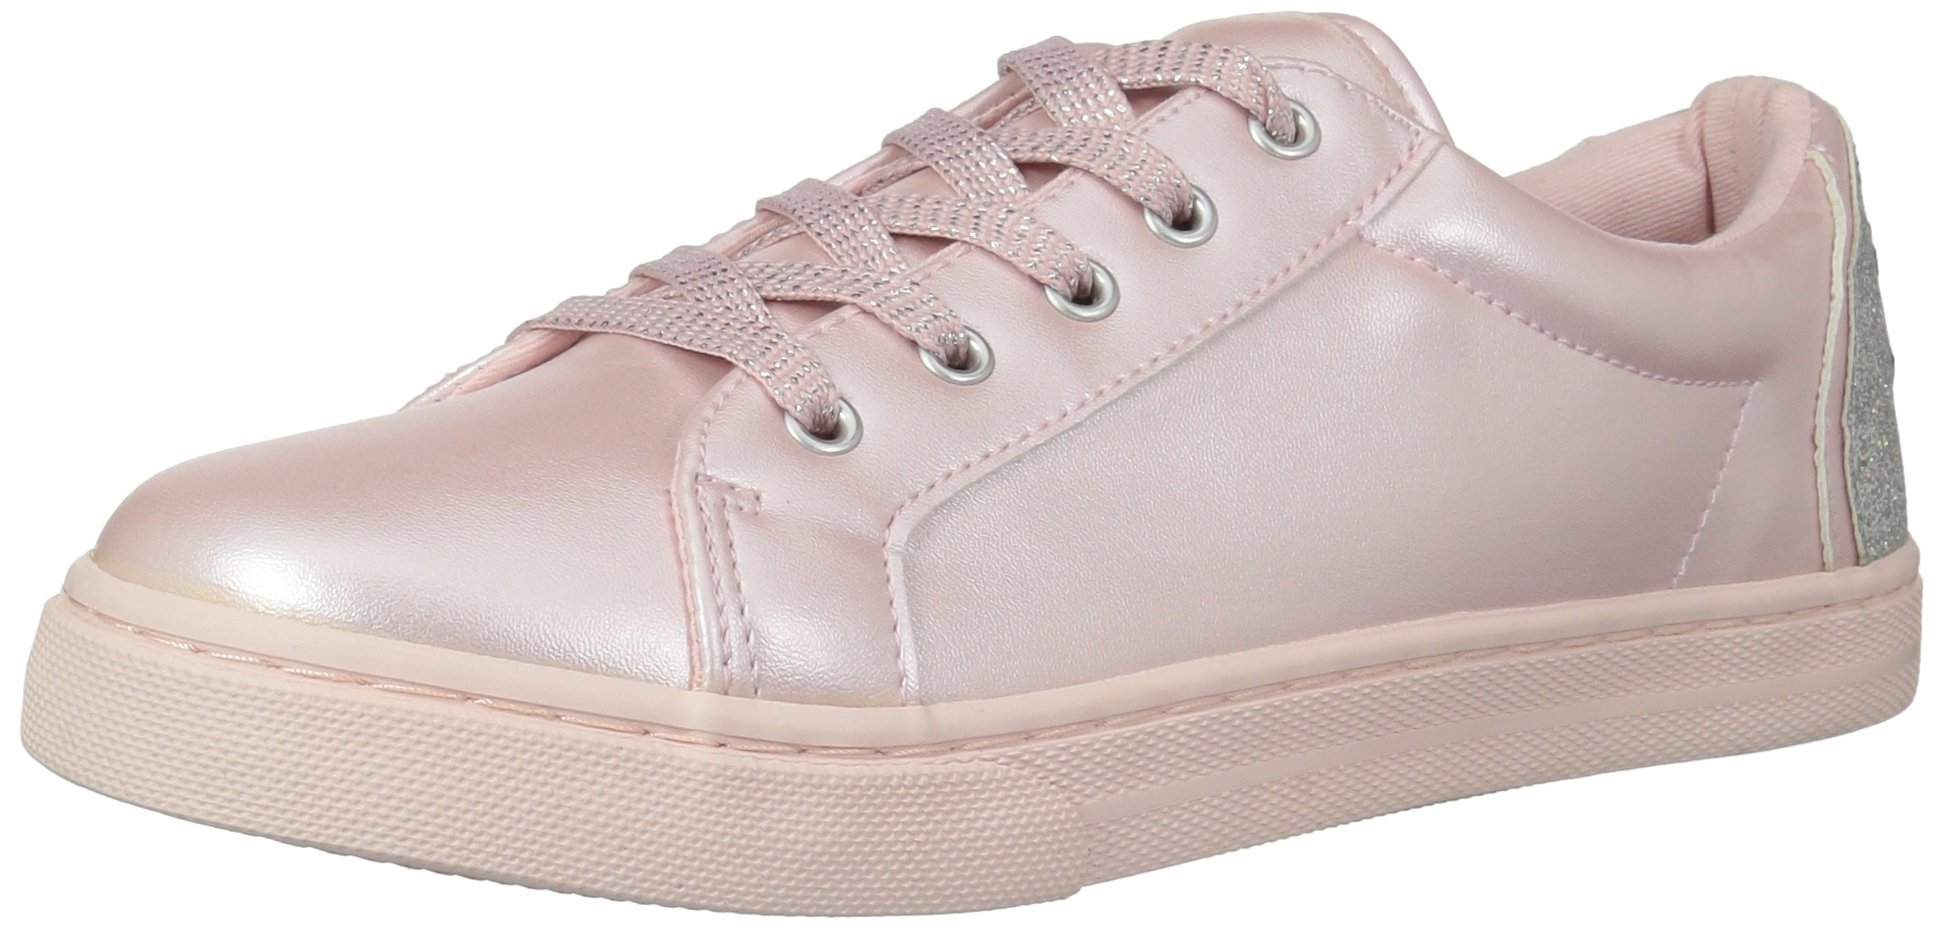 The Children's Place Girls' BG Emoji Sneaker, Pink, Youth 4 Medium US Big Kid